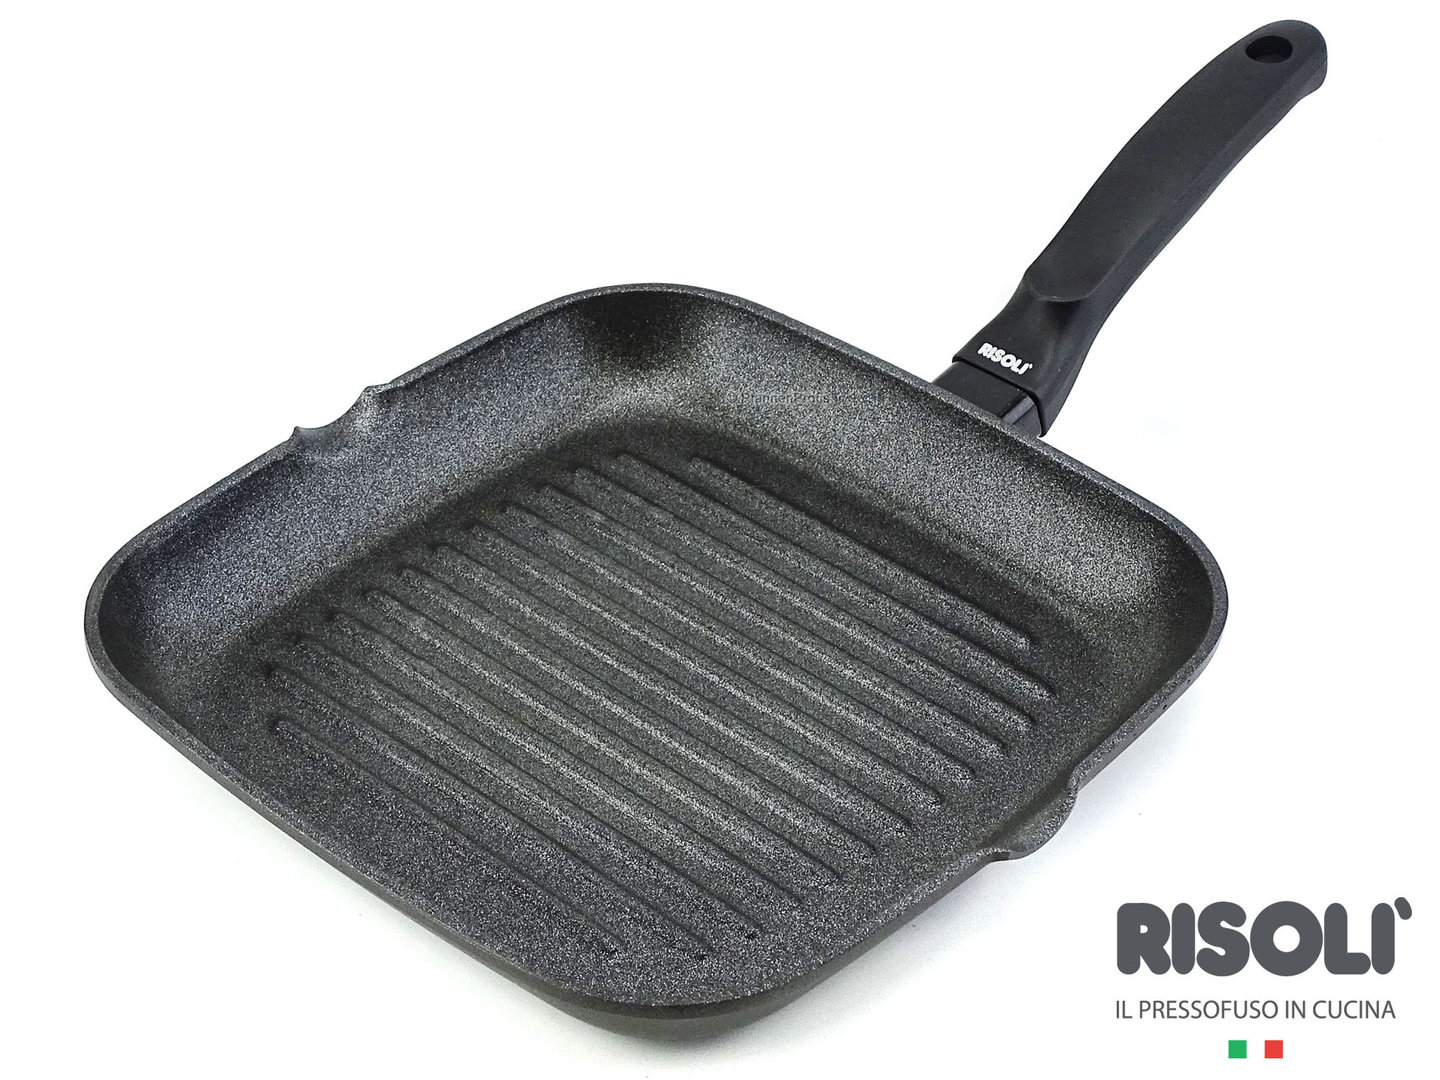 RISOLI cast aluminum grillpan BLACKplus induction 26 x 26 cm